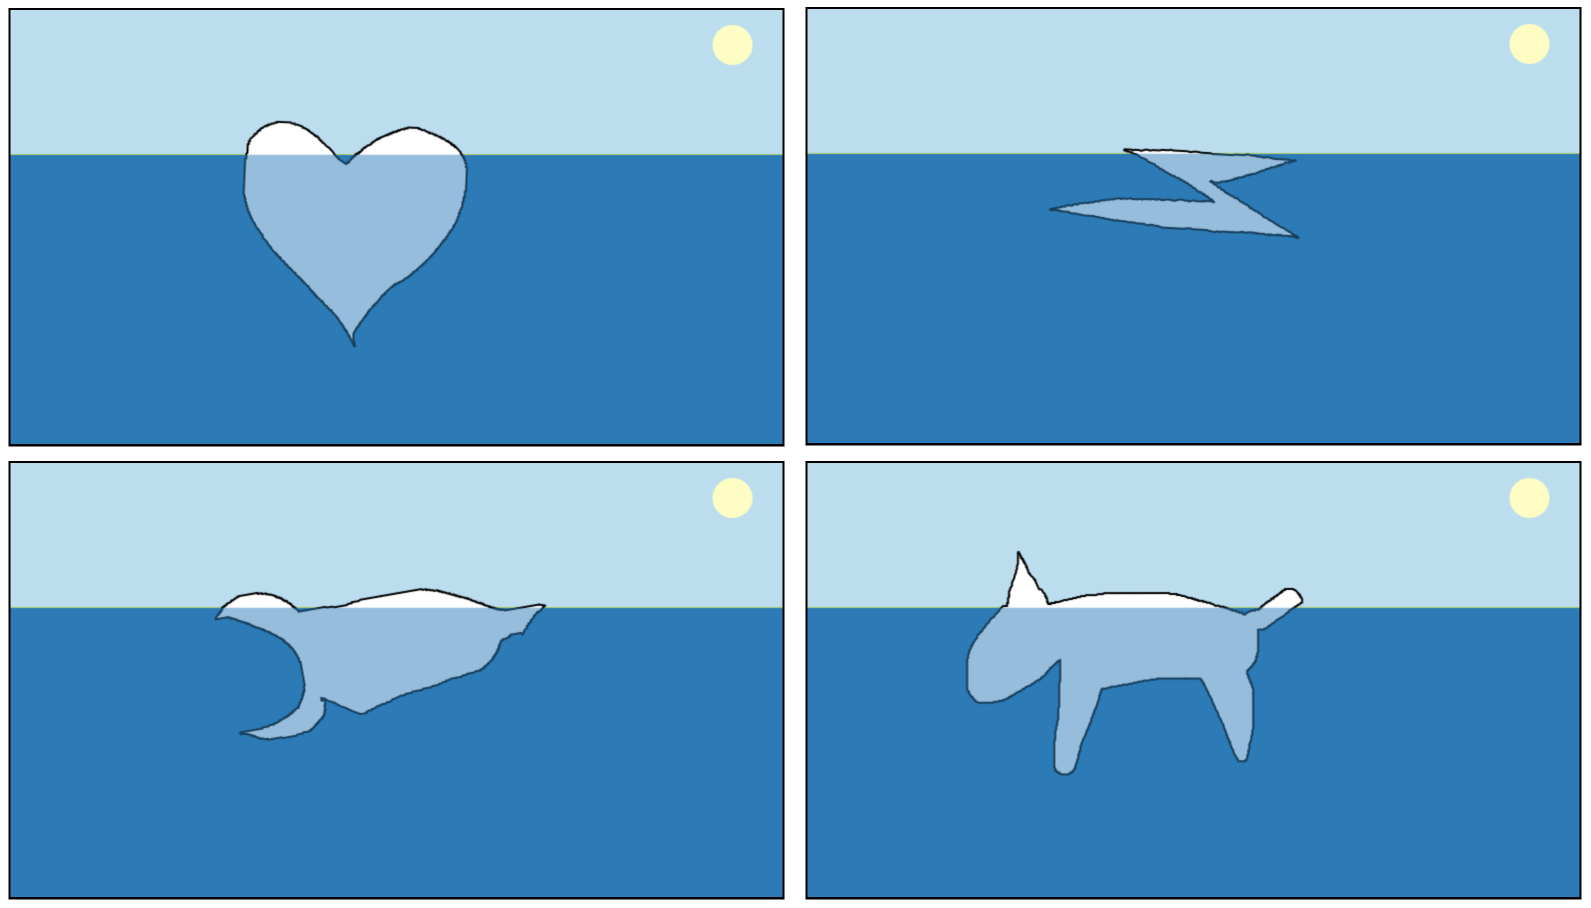 Images from iceberg simulator, attempts at a heart, a bolt of lightning, a spaceship and a dog.